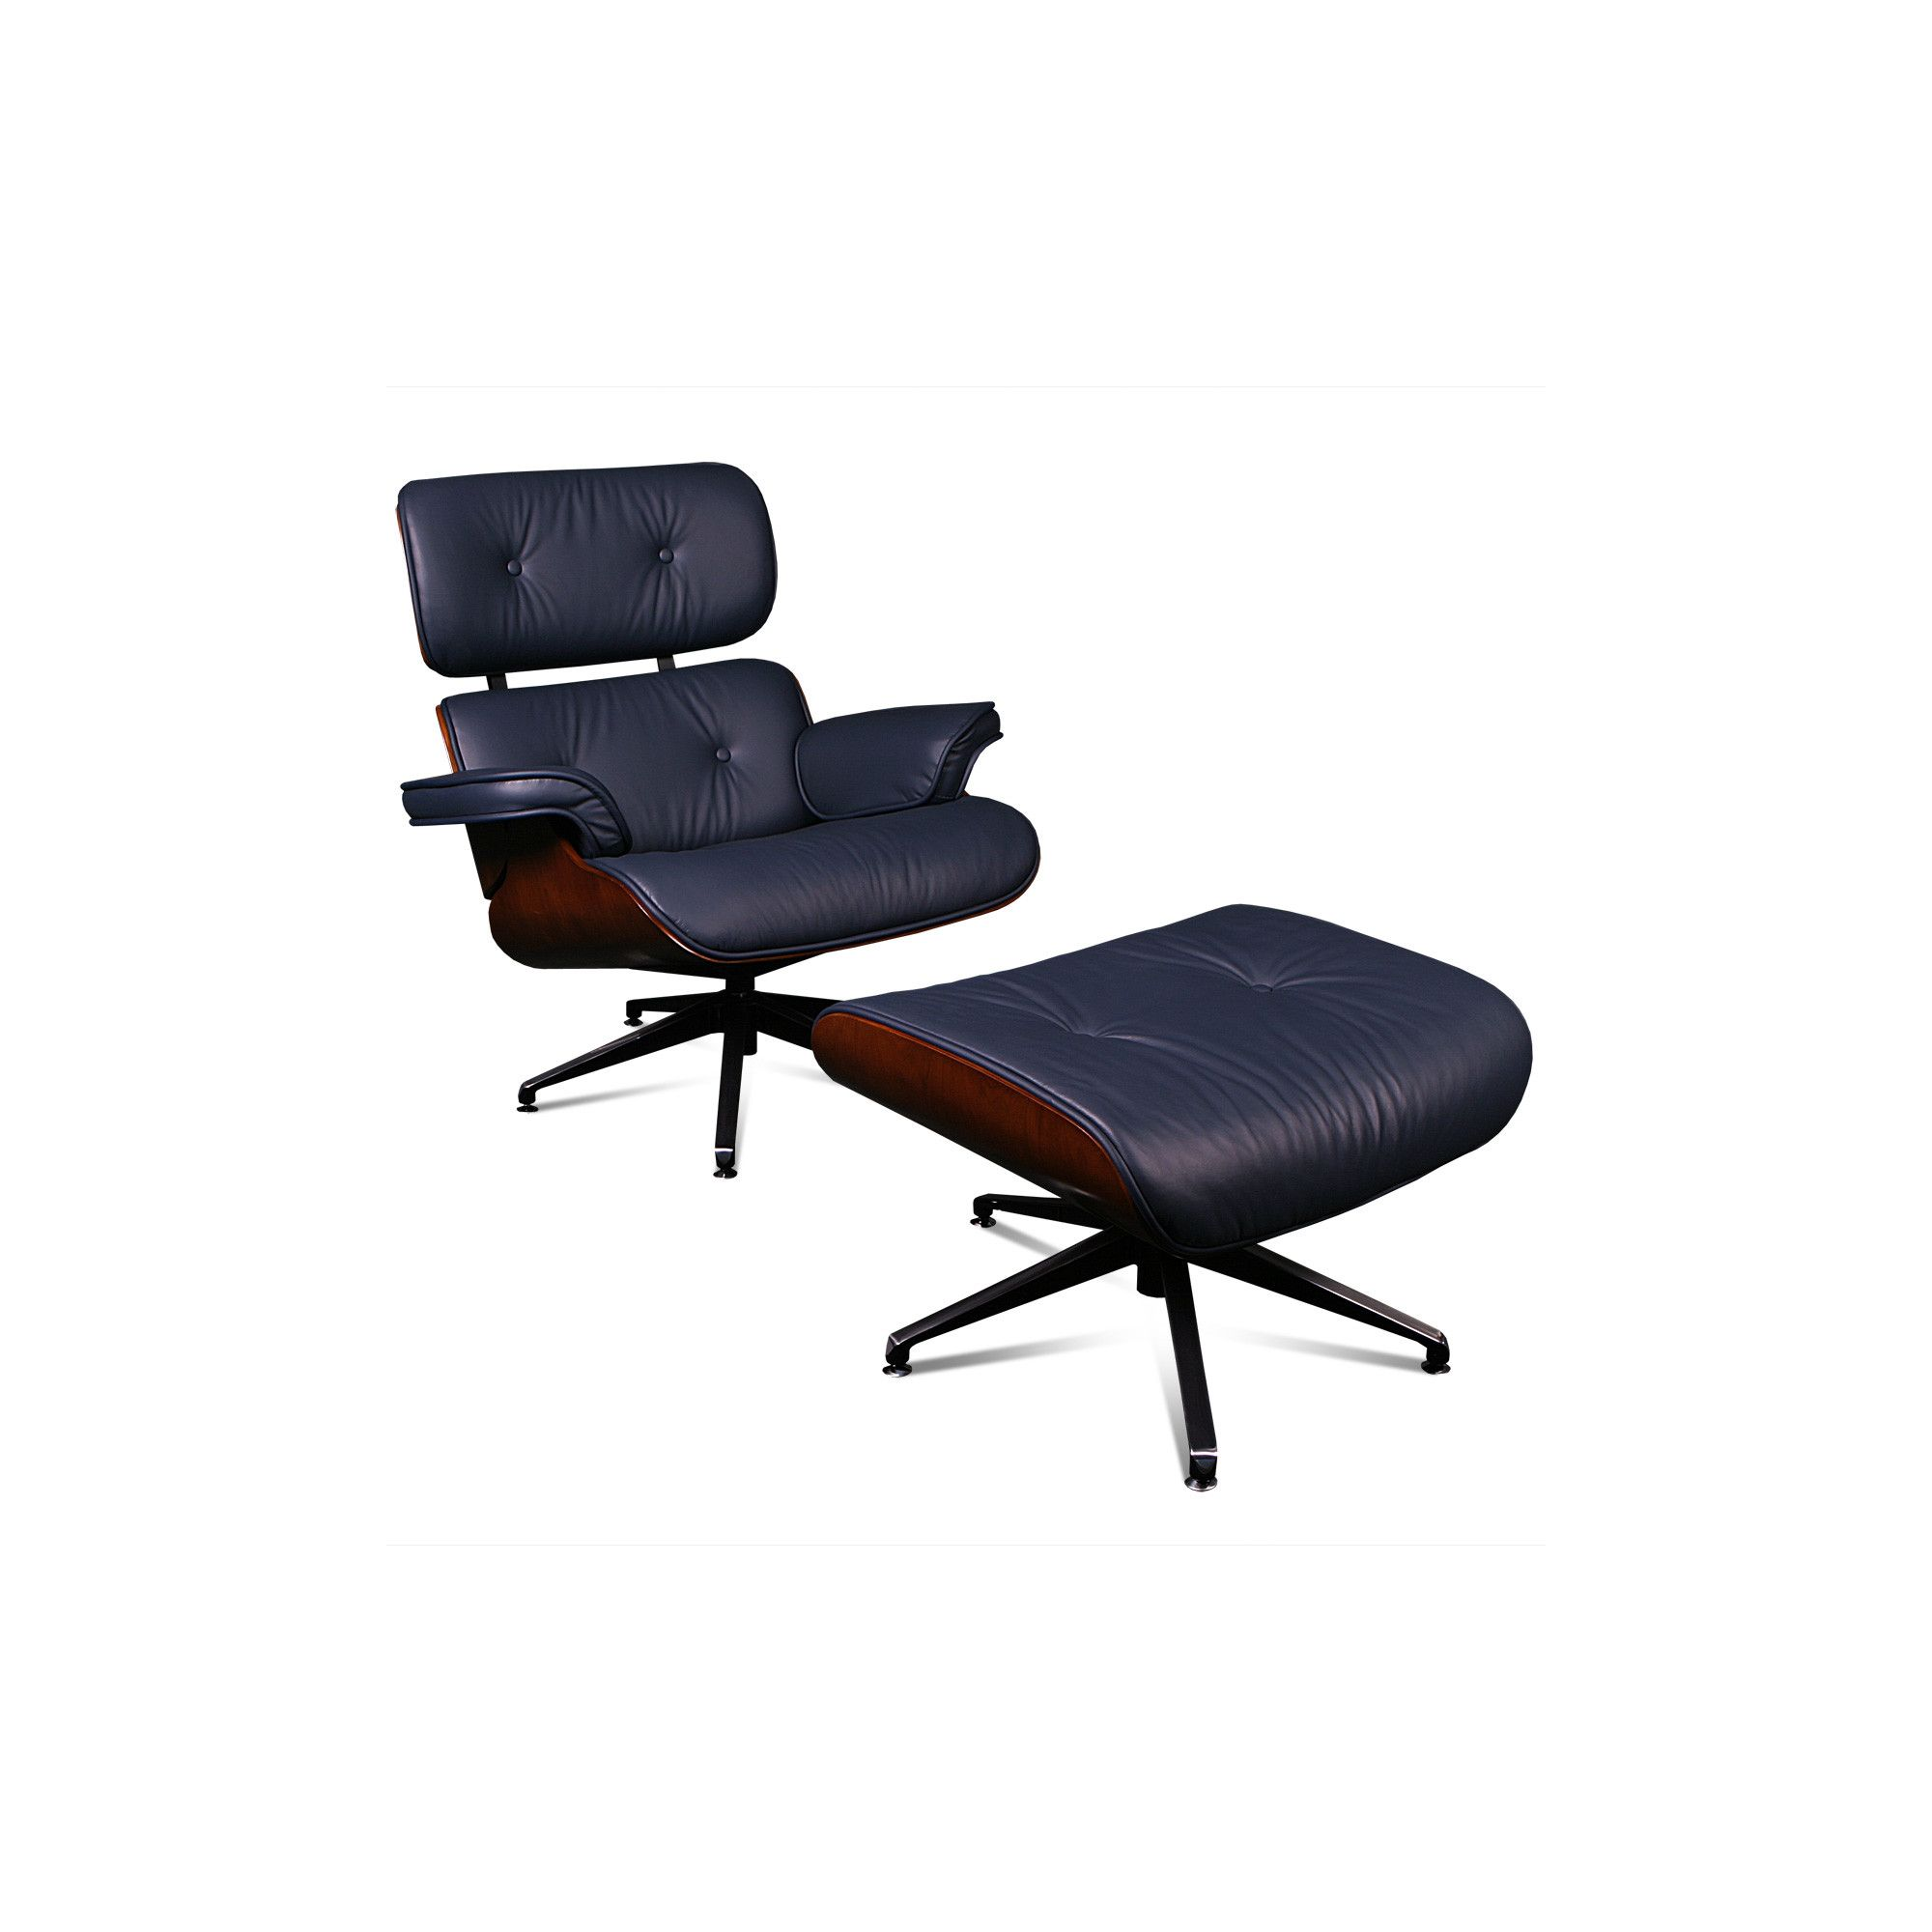 ProMech Racing Classic Leather Lounge Chair and Ottoman - Blue at Tesco Direct